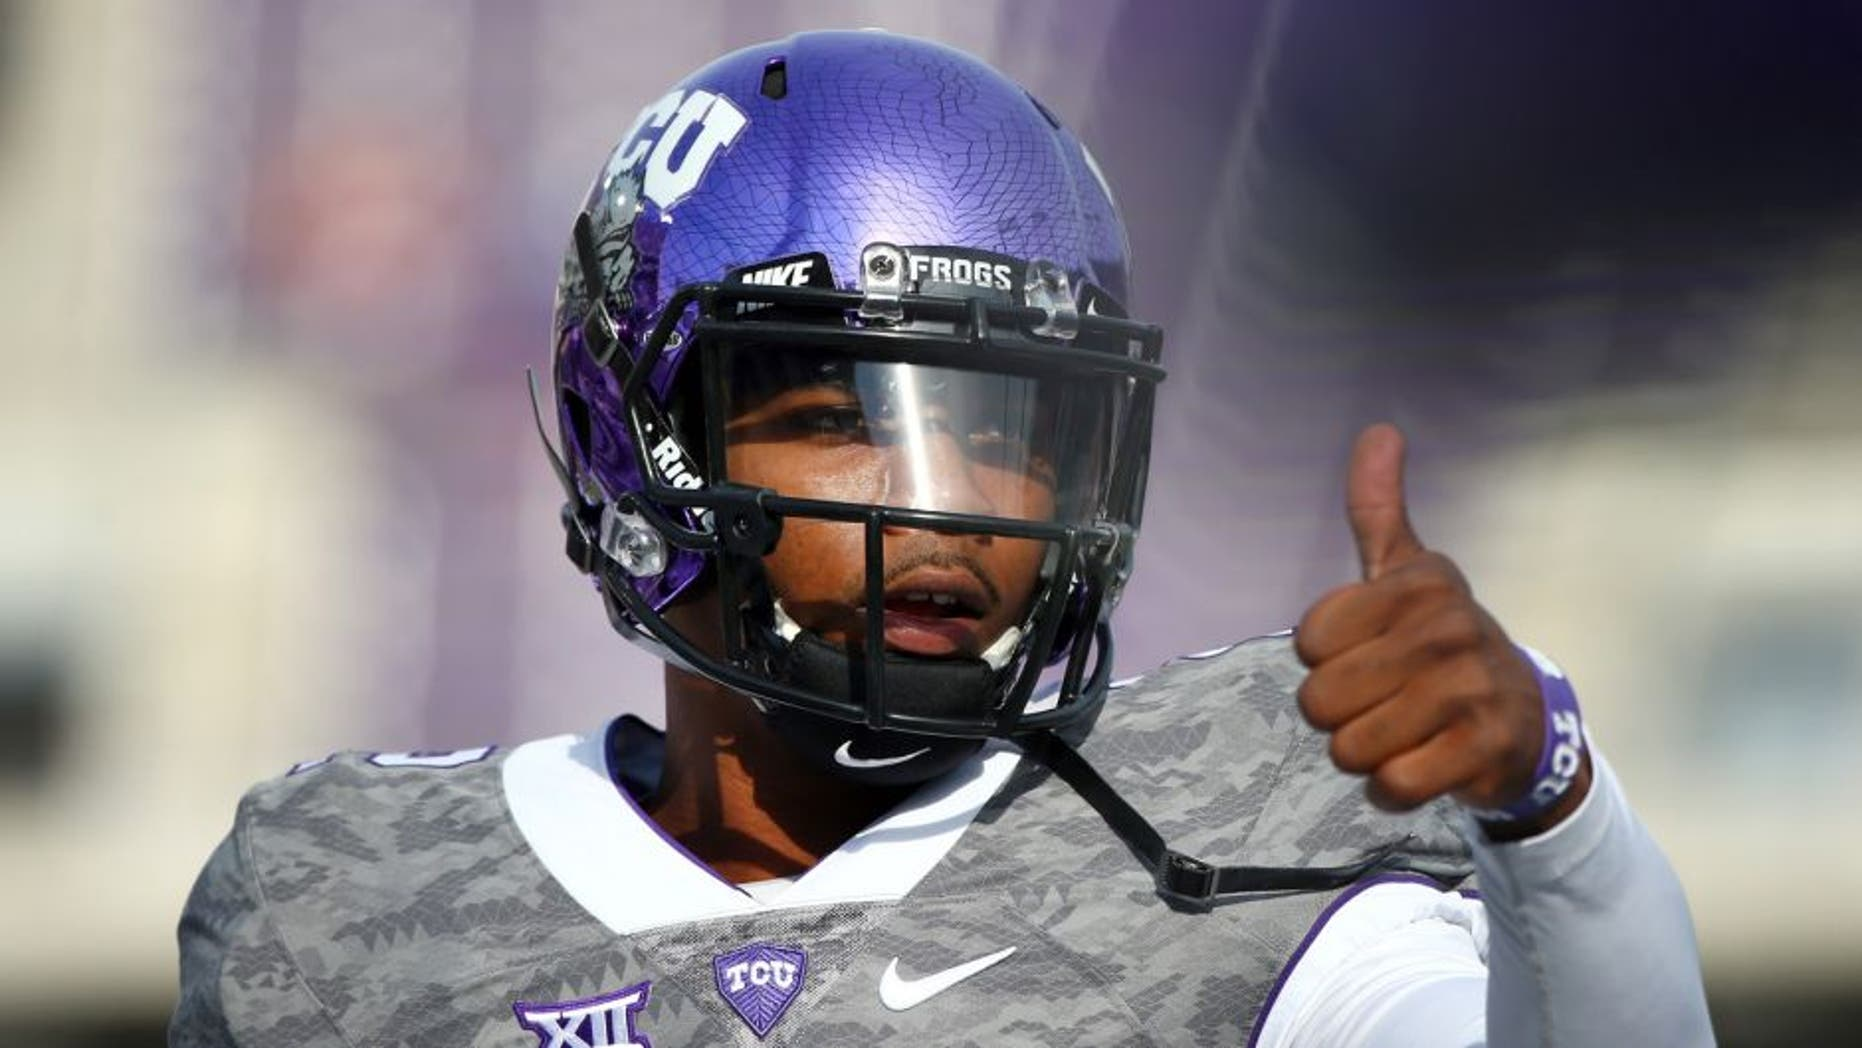 FORT WORTH, TX - OCTOBER 03: Trevone Boykin #2 of the TCU Horned Frogs warms up before taking on the Texas Longhorns at Amon G. Carter Stadium on October 3, 2015 in Fort Worth, Texas. (Photo by Tom Pennington/Getty Images)